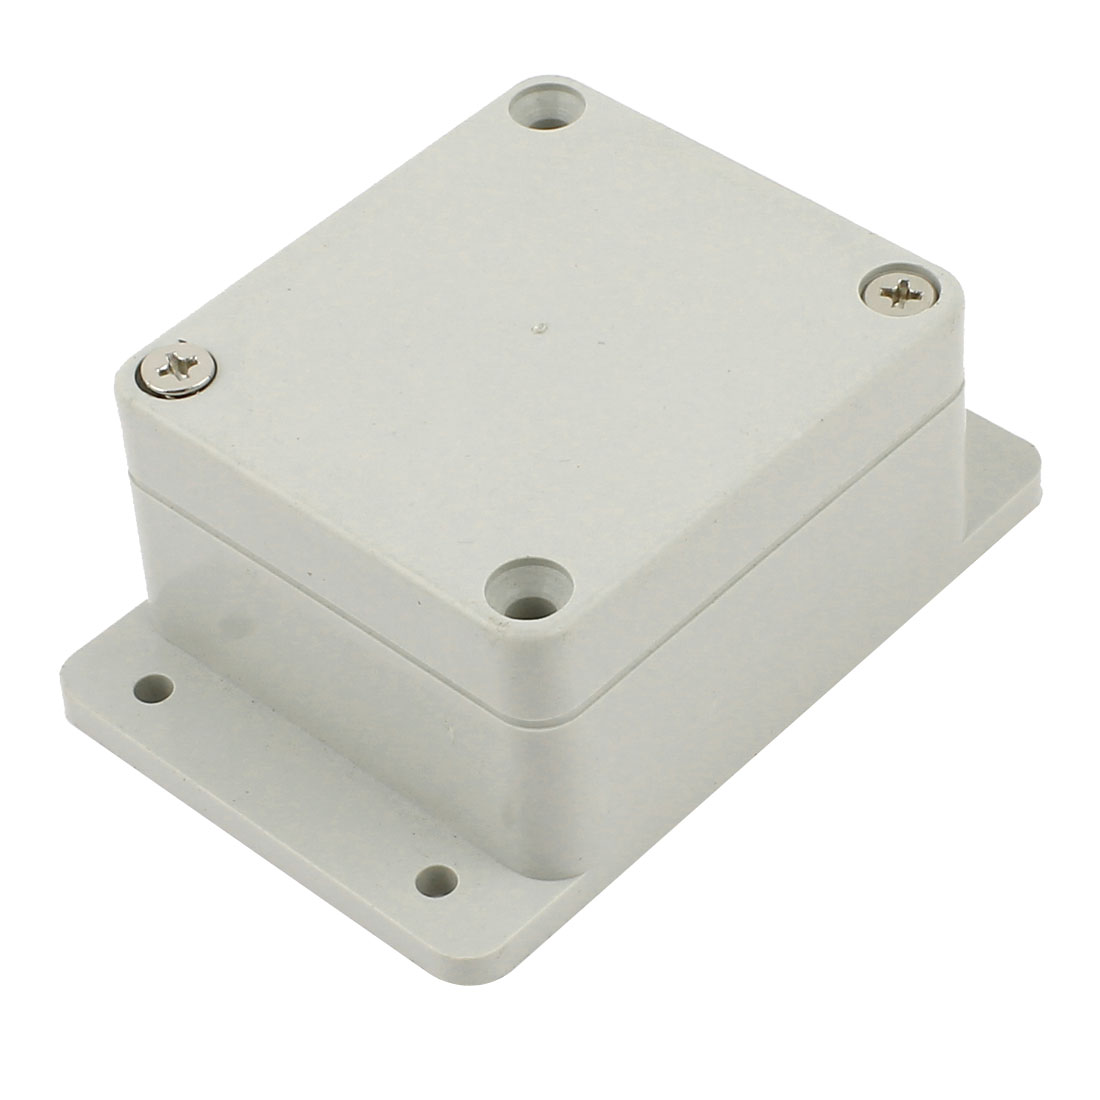 65mmx59mmx35mm Cable Connect Plastic Waterproof Sealed Junction Box